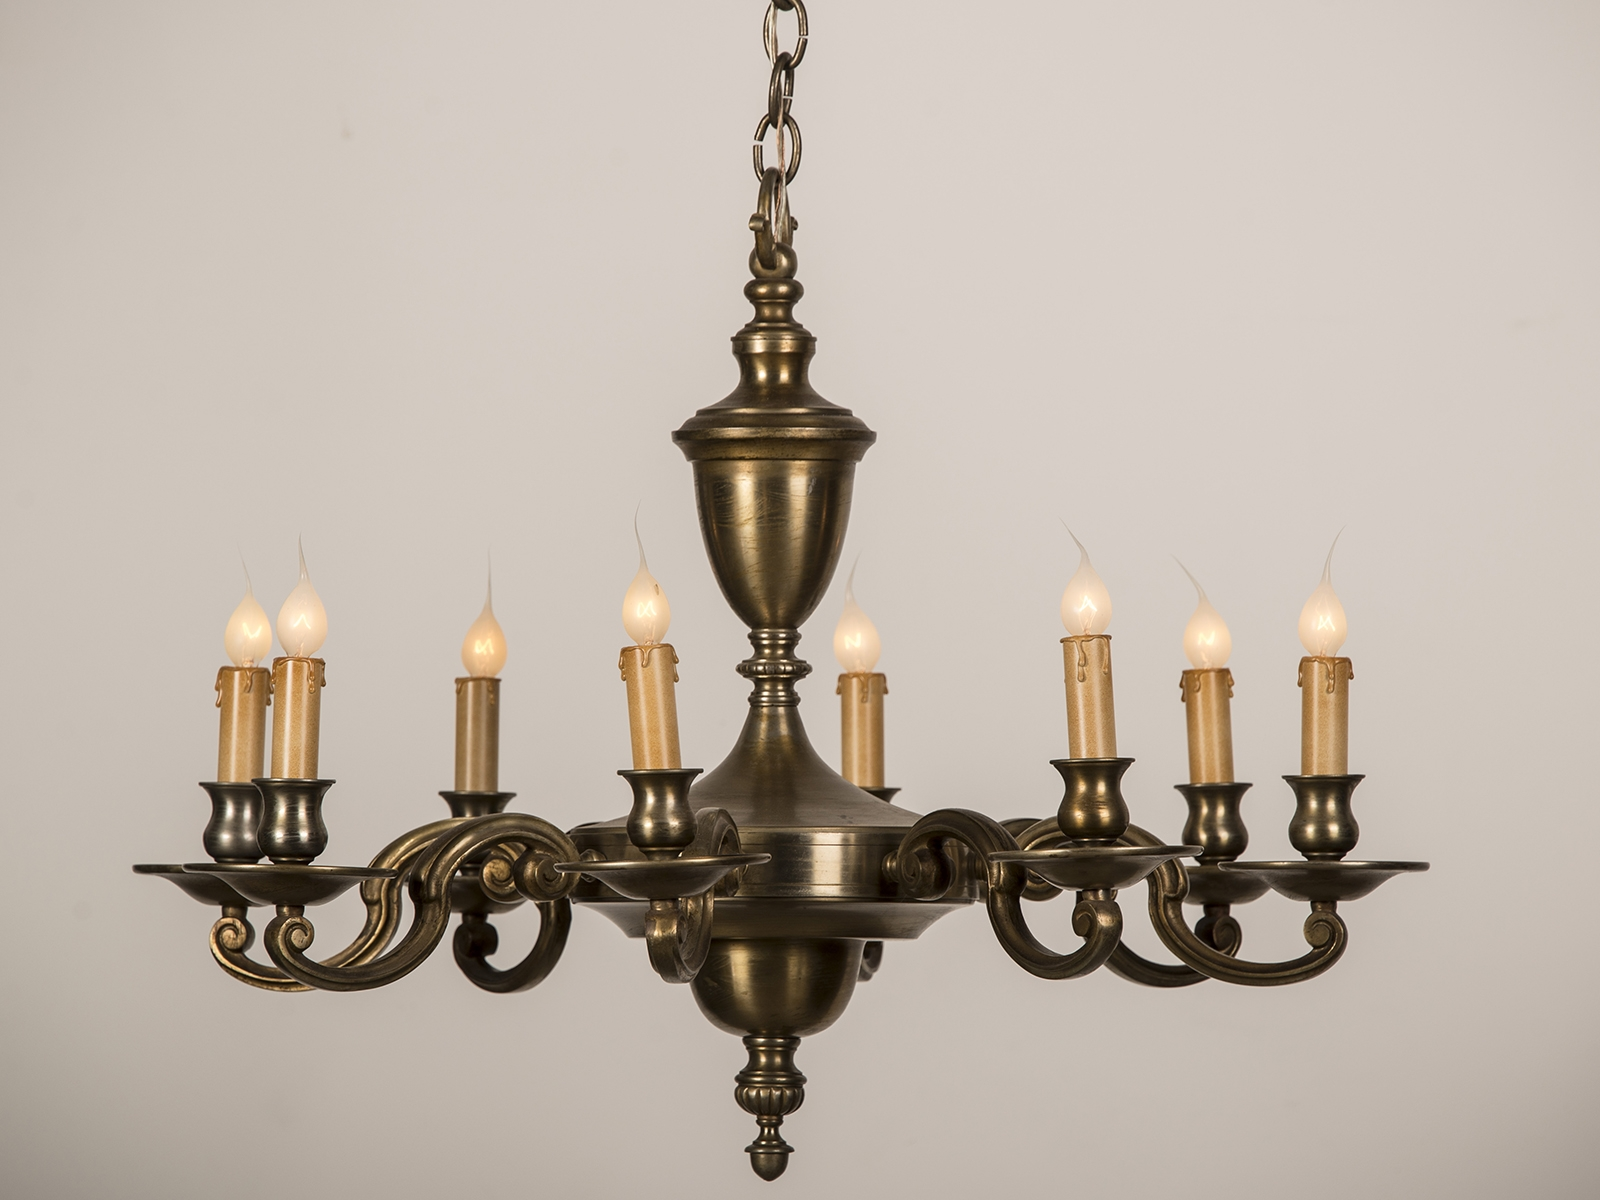 A Beautiful Eight Arm Heavy Brass Chandelier Having A Central Stem With Regard To Old Brass Chandelier (Image 1 of 15)